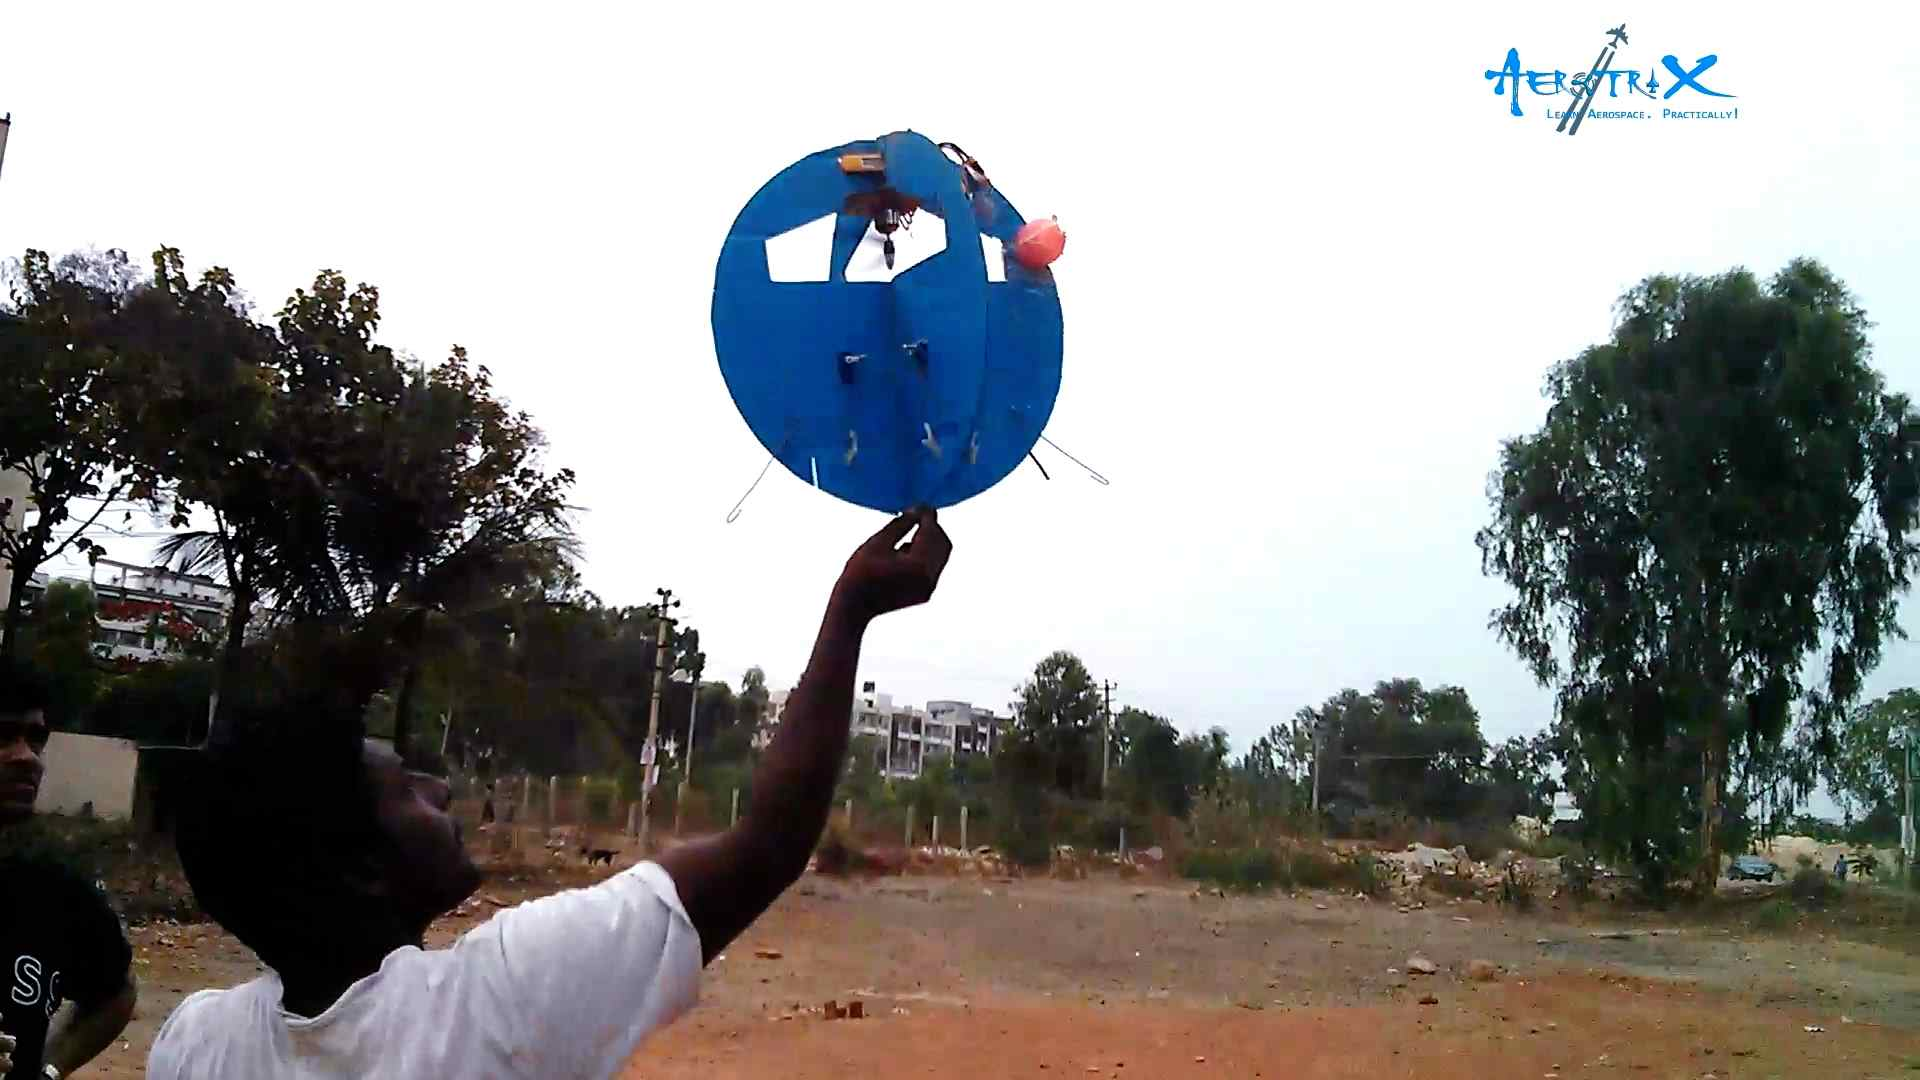 Sphere Drone Flight Session